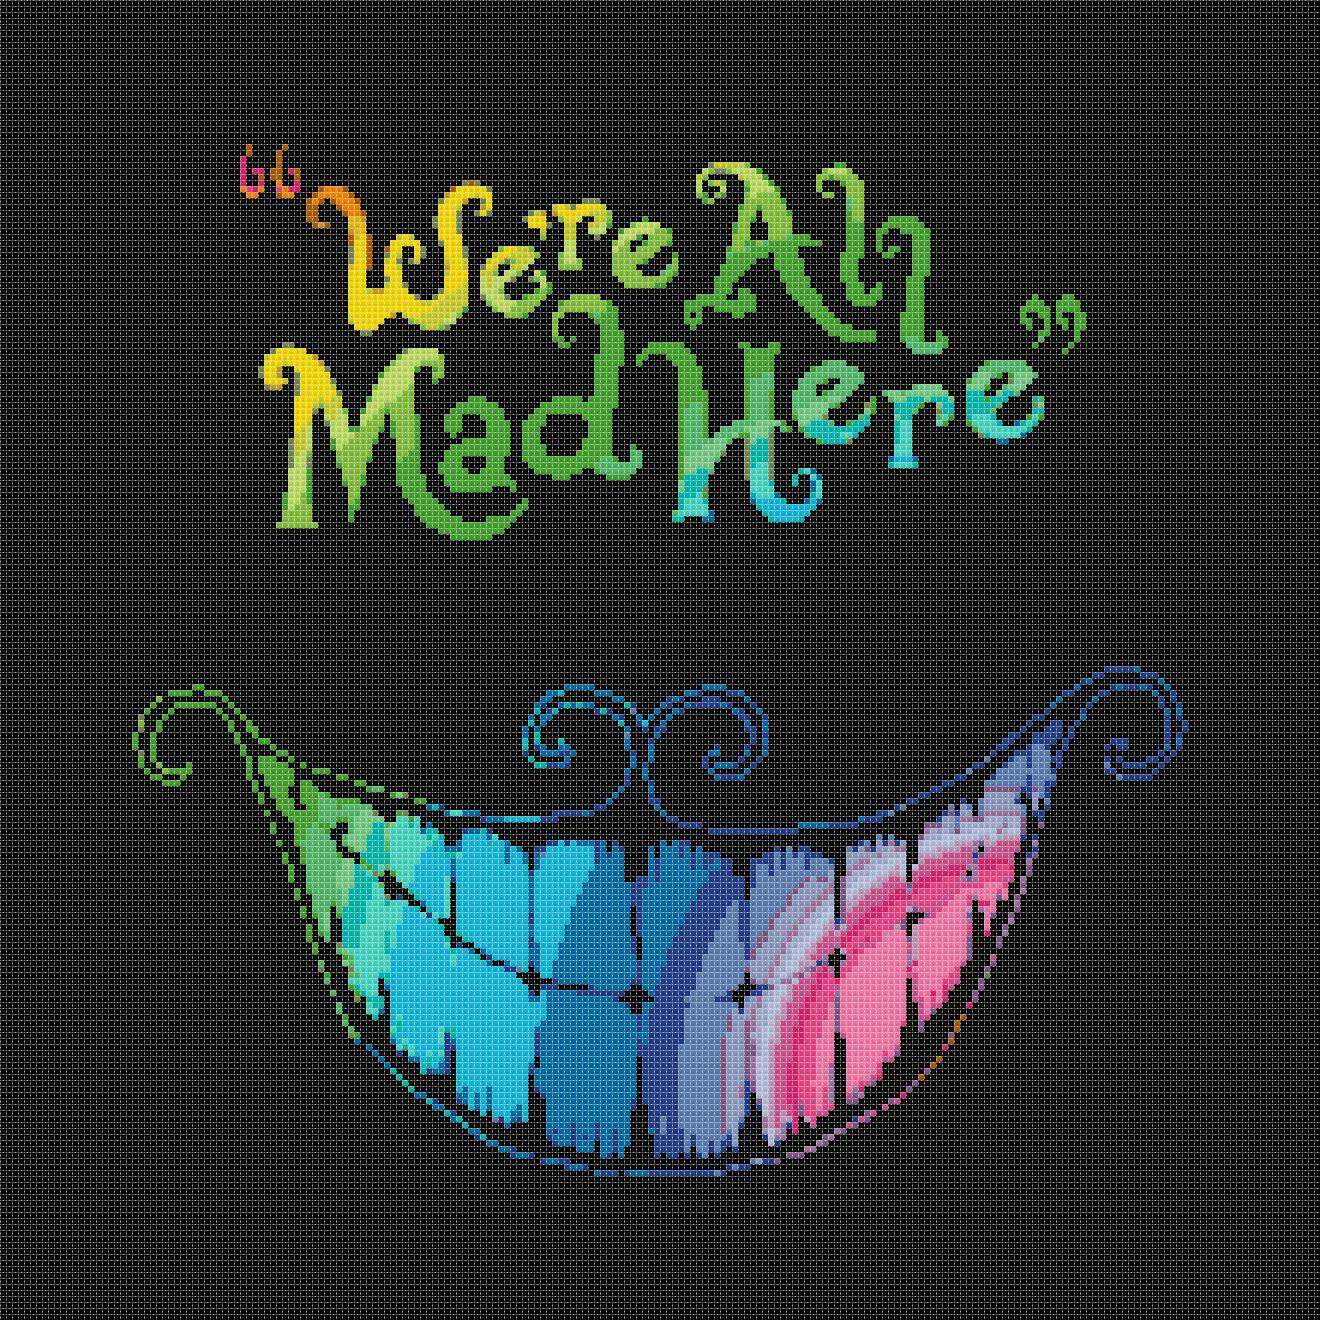 """We re All Mad Here Alice In Wonderland Cheshire Cat - 5.71"""" x 15.71"""" - Cross Stitch Pattern Pdf E983"""